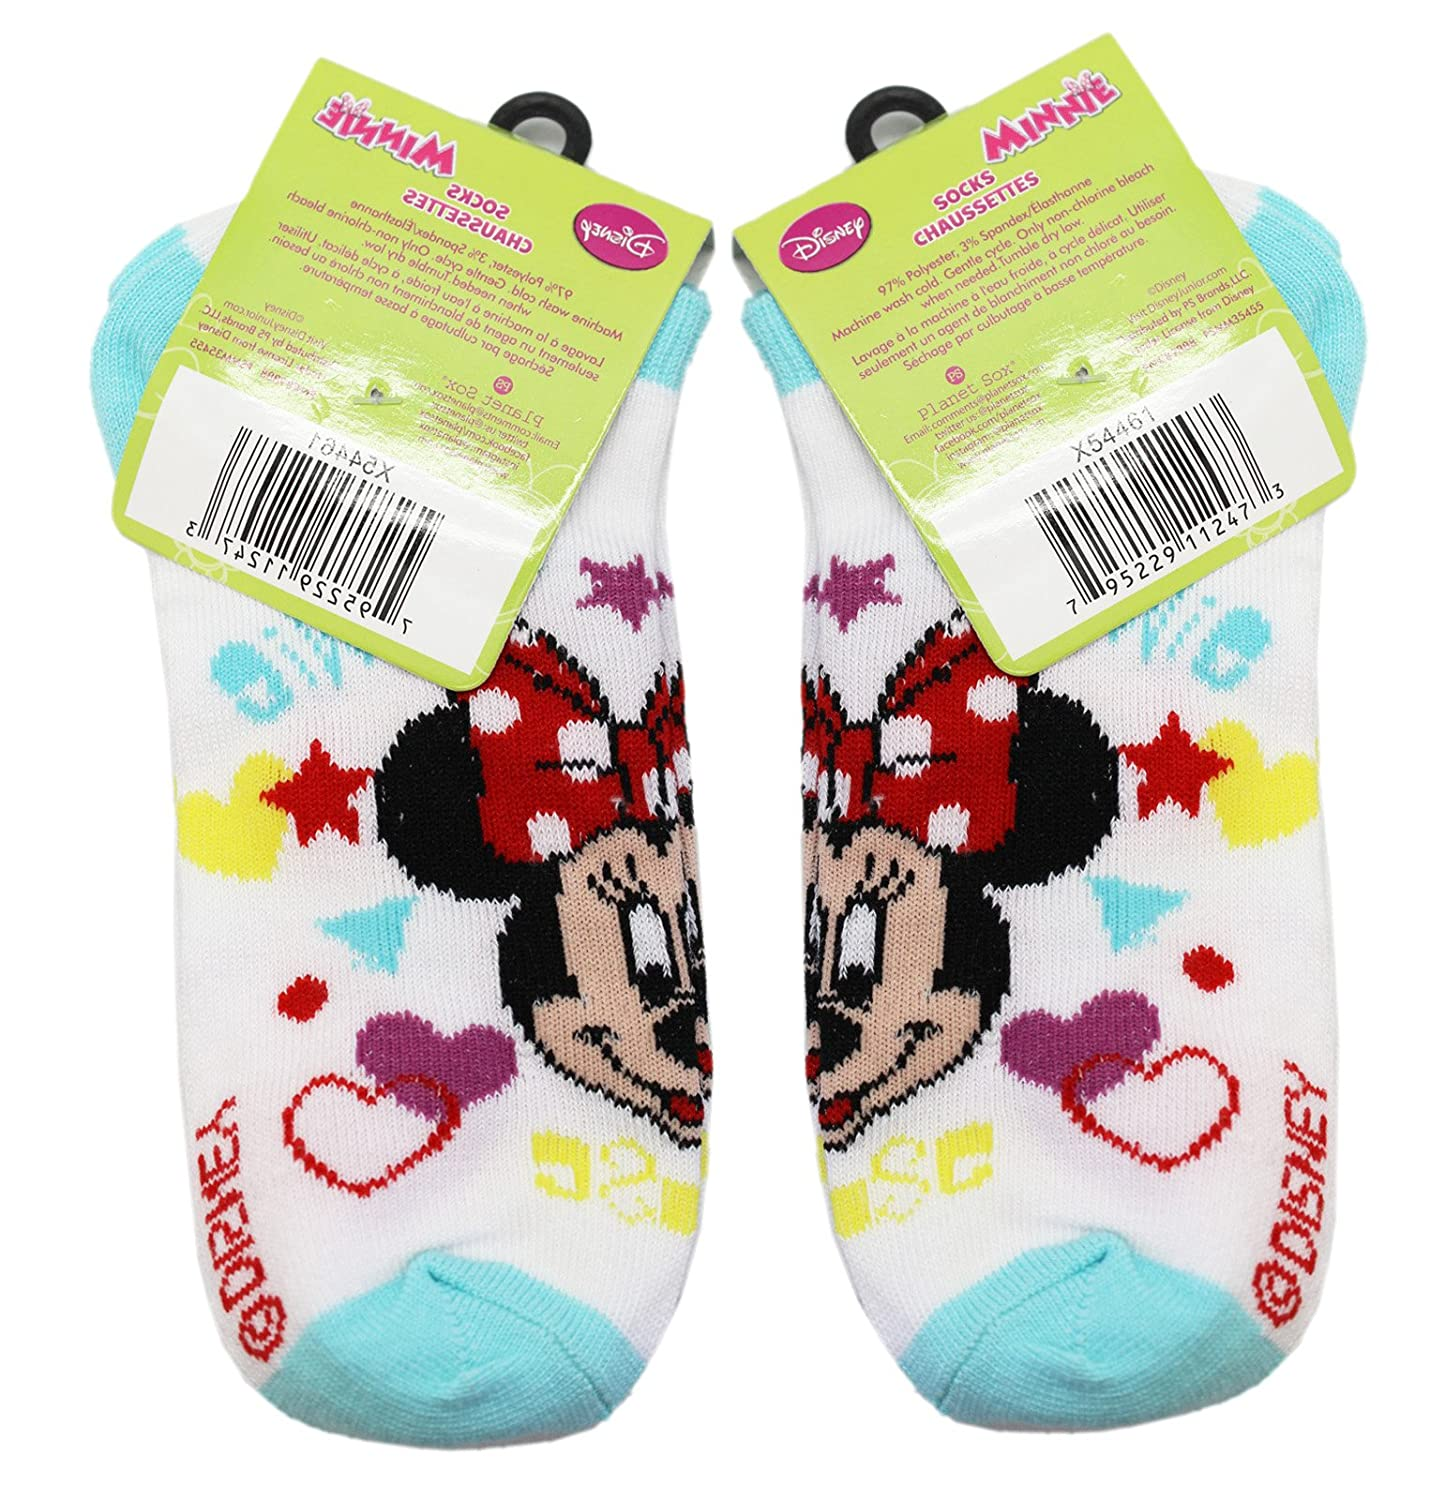 2 Pair, Size 6-8 Disneys Minnie Mouse Stars//Hearts Light Blue and White Socks